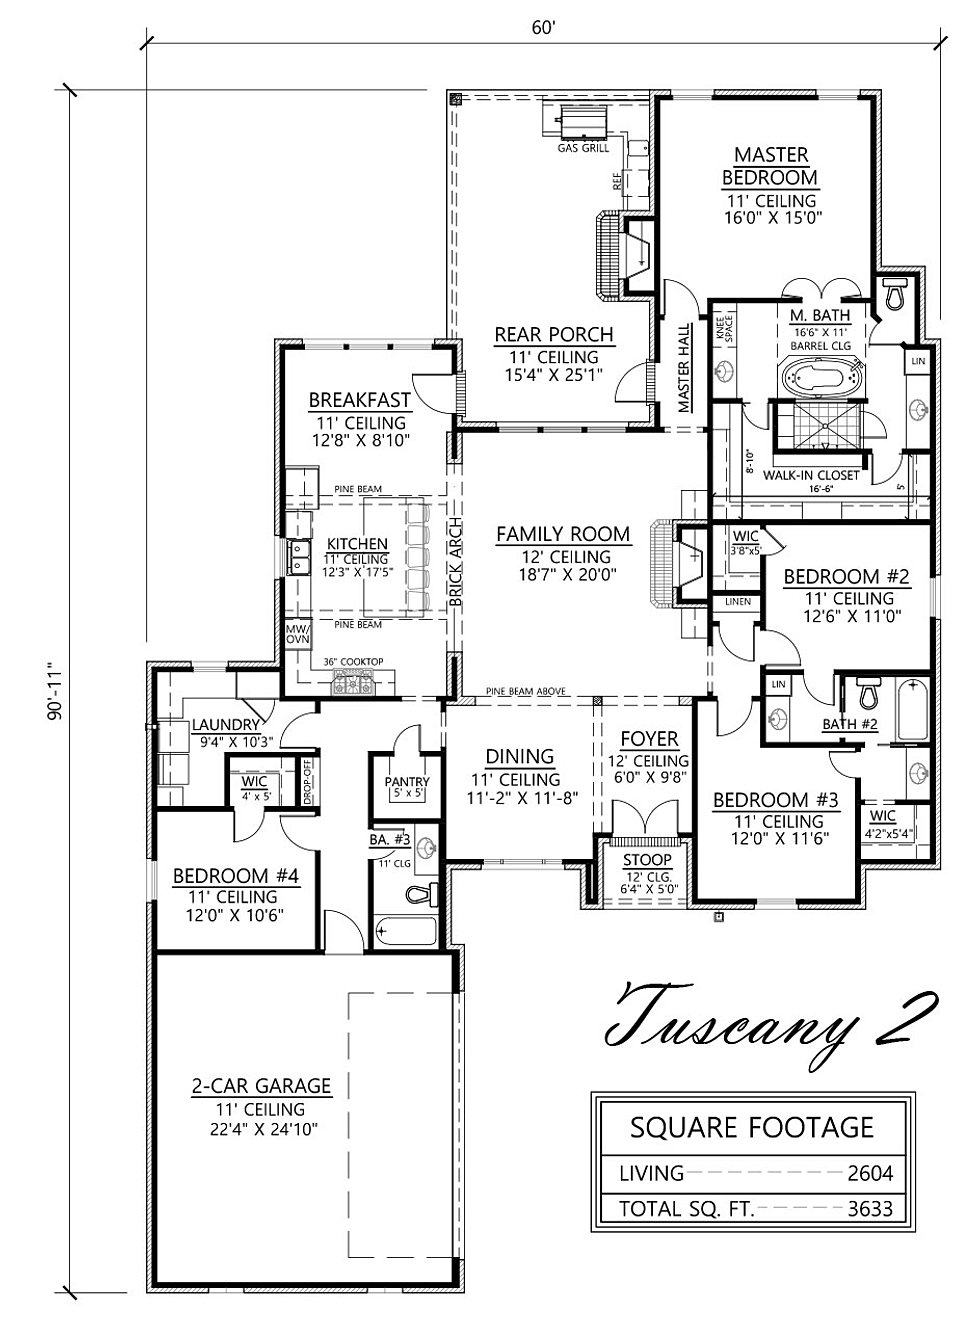 madden home design - the tuscany ii